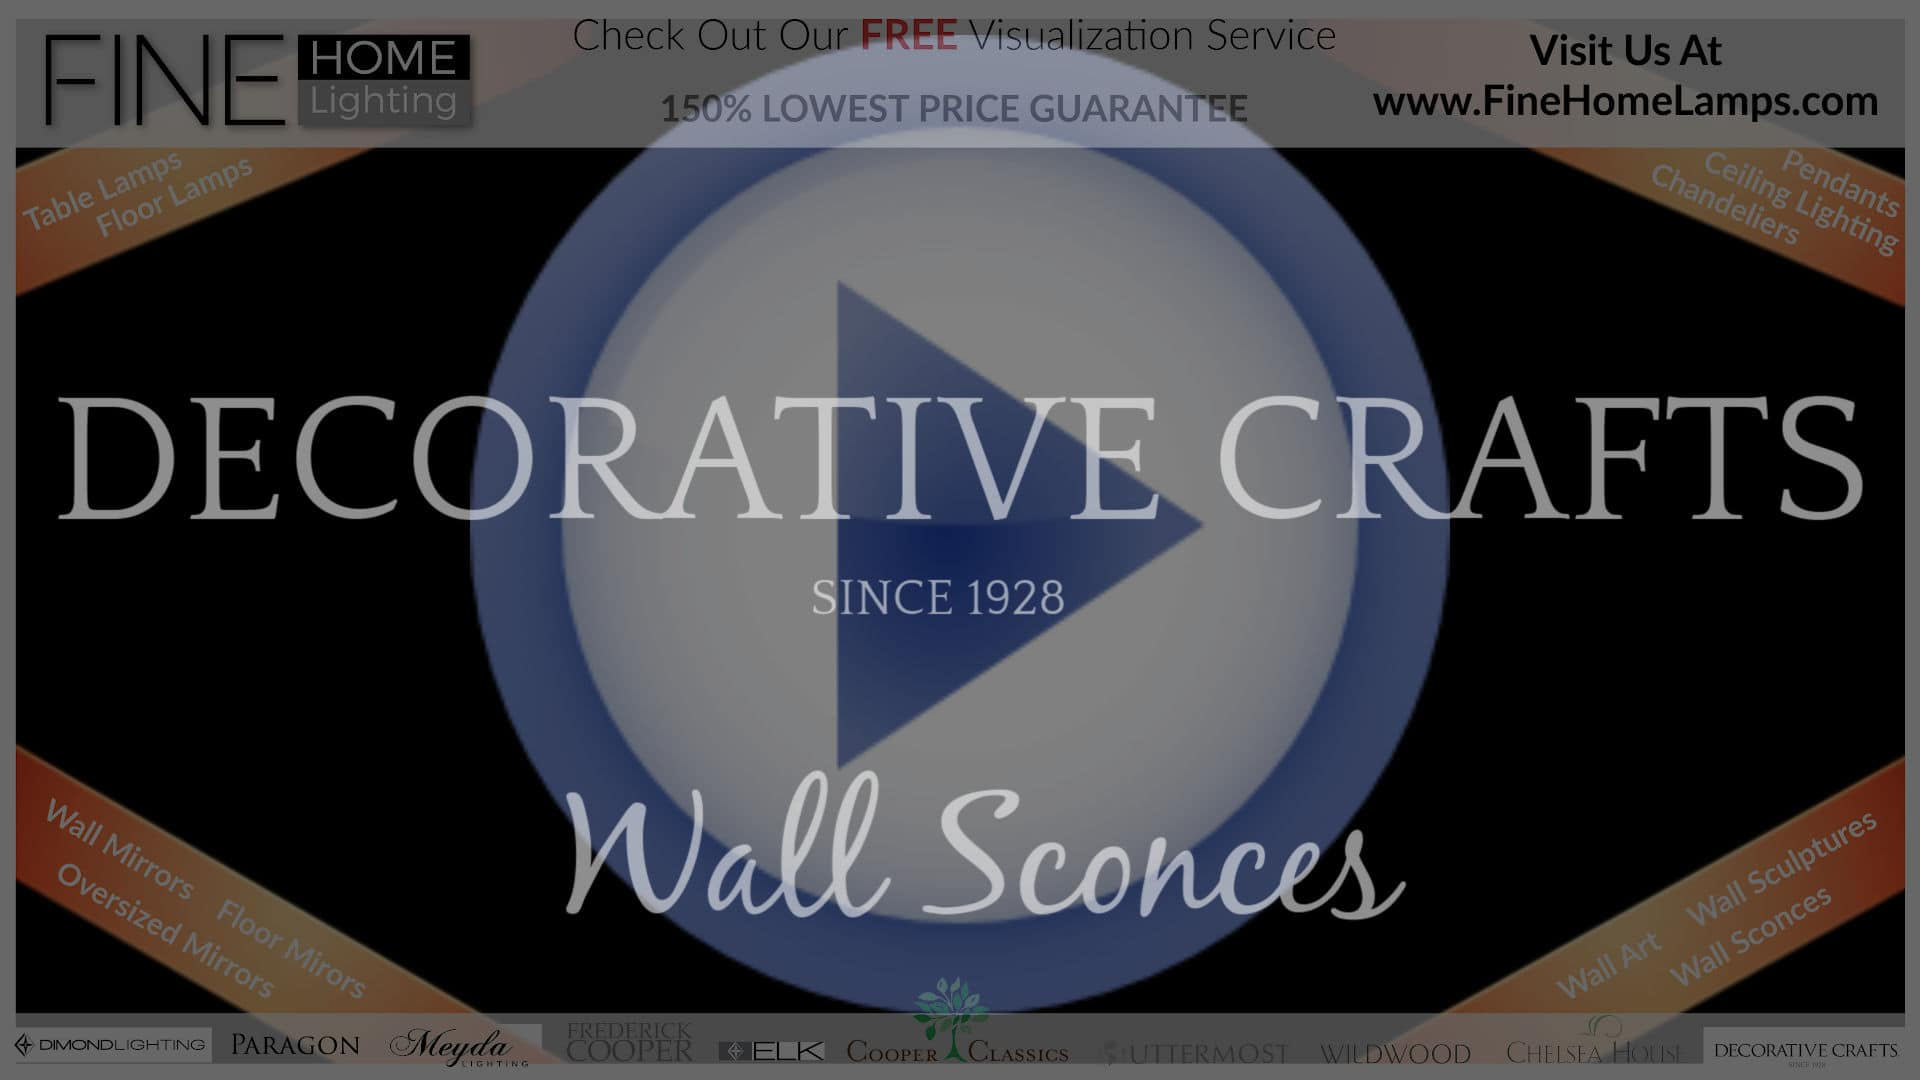 DECORATIVE-CRAFTS-WALL-SCONCES-Thanks-for-watching-this-video-Get-an-additional-15-percent-off-your-next-purchase-Use-Coupon-Code-VIDEO